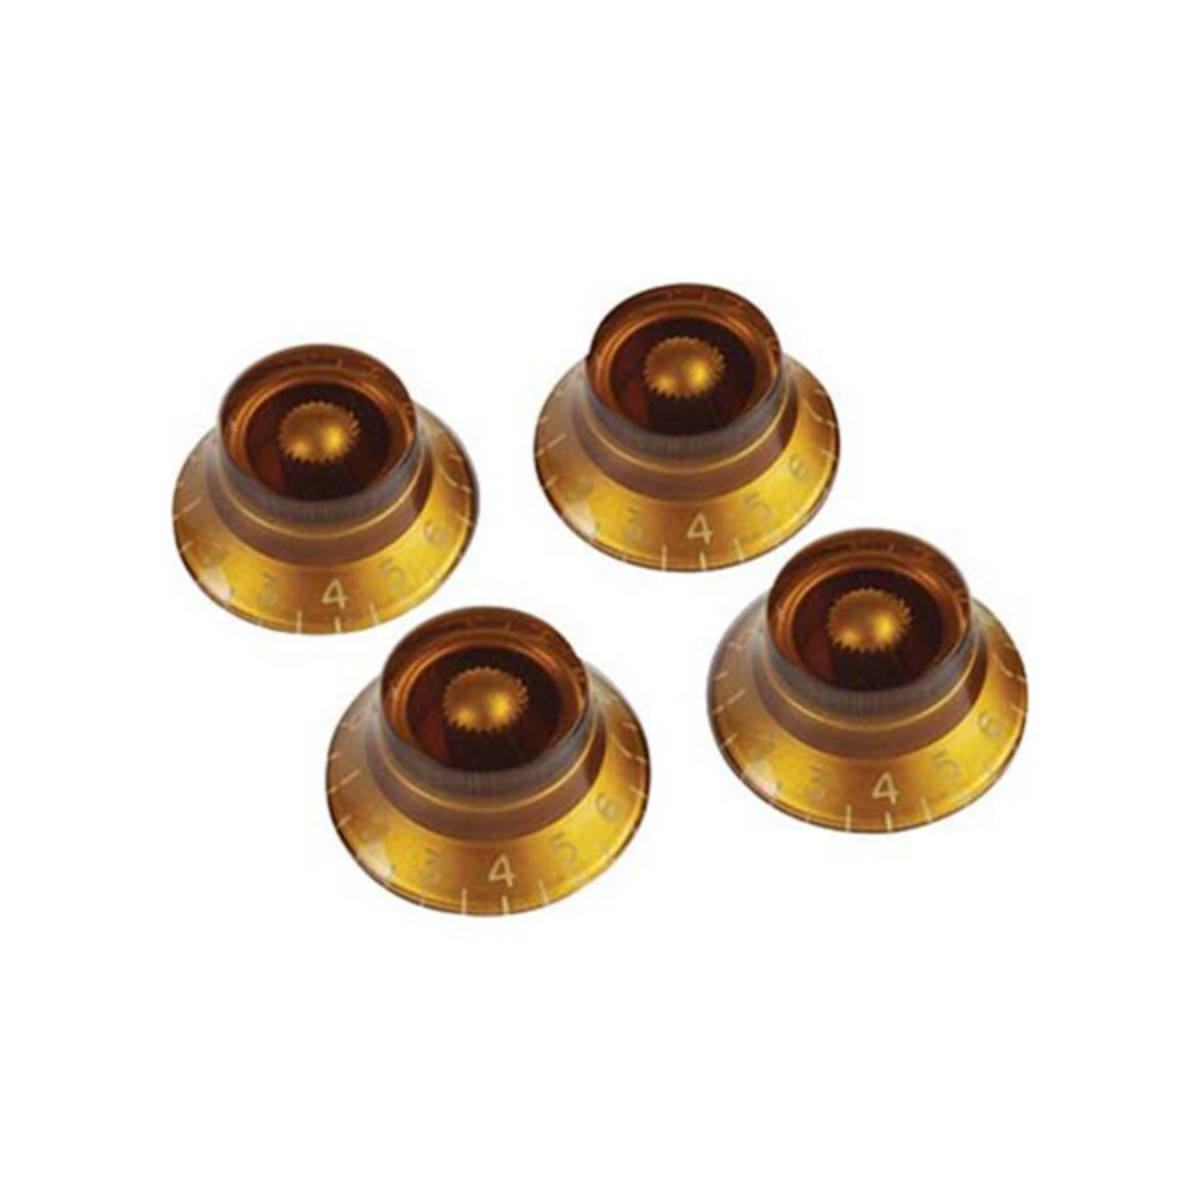 gibson top hat knobs for electric guitar 4 pack amber at gear4music. Black Bedroom Furniture Sets. Home Design Ideas